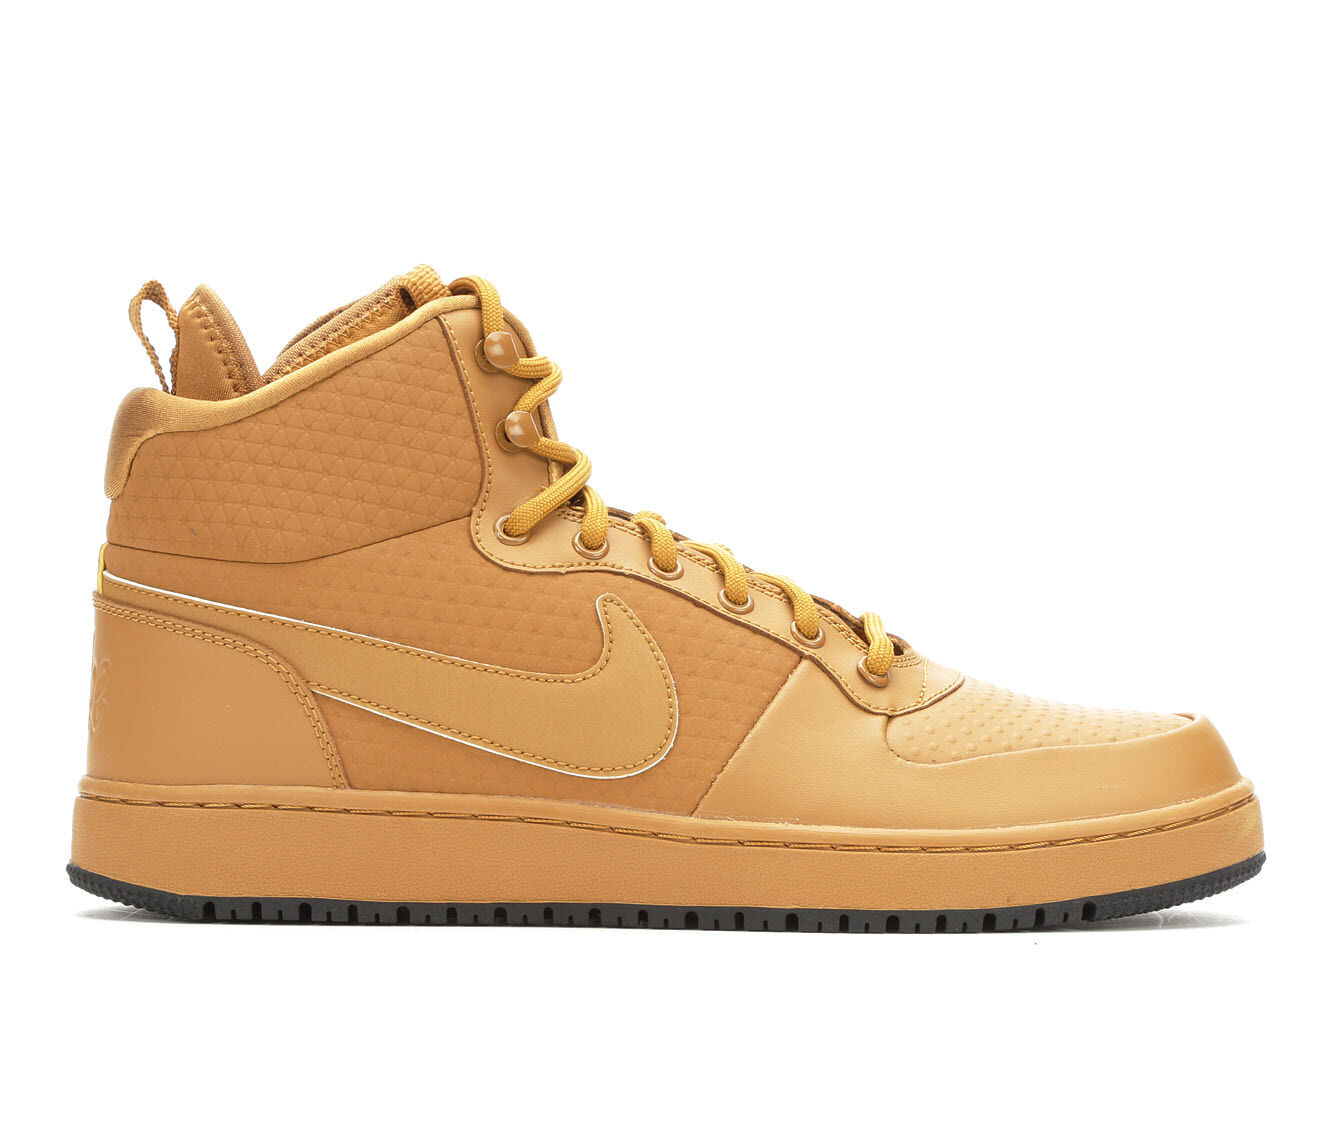 Men's Nike Ebernon Mid SE Sneakers Wheat/Blk